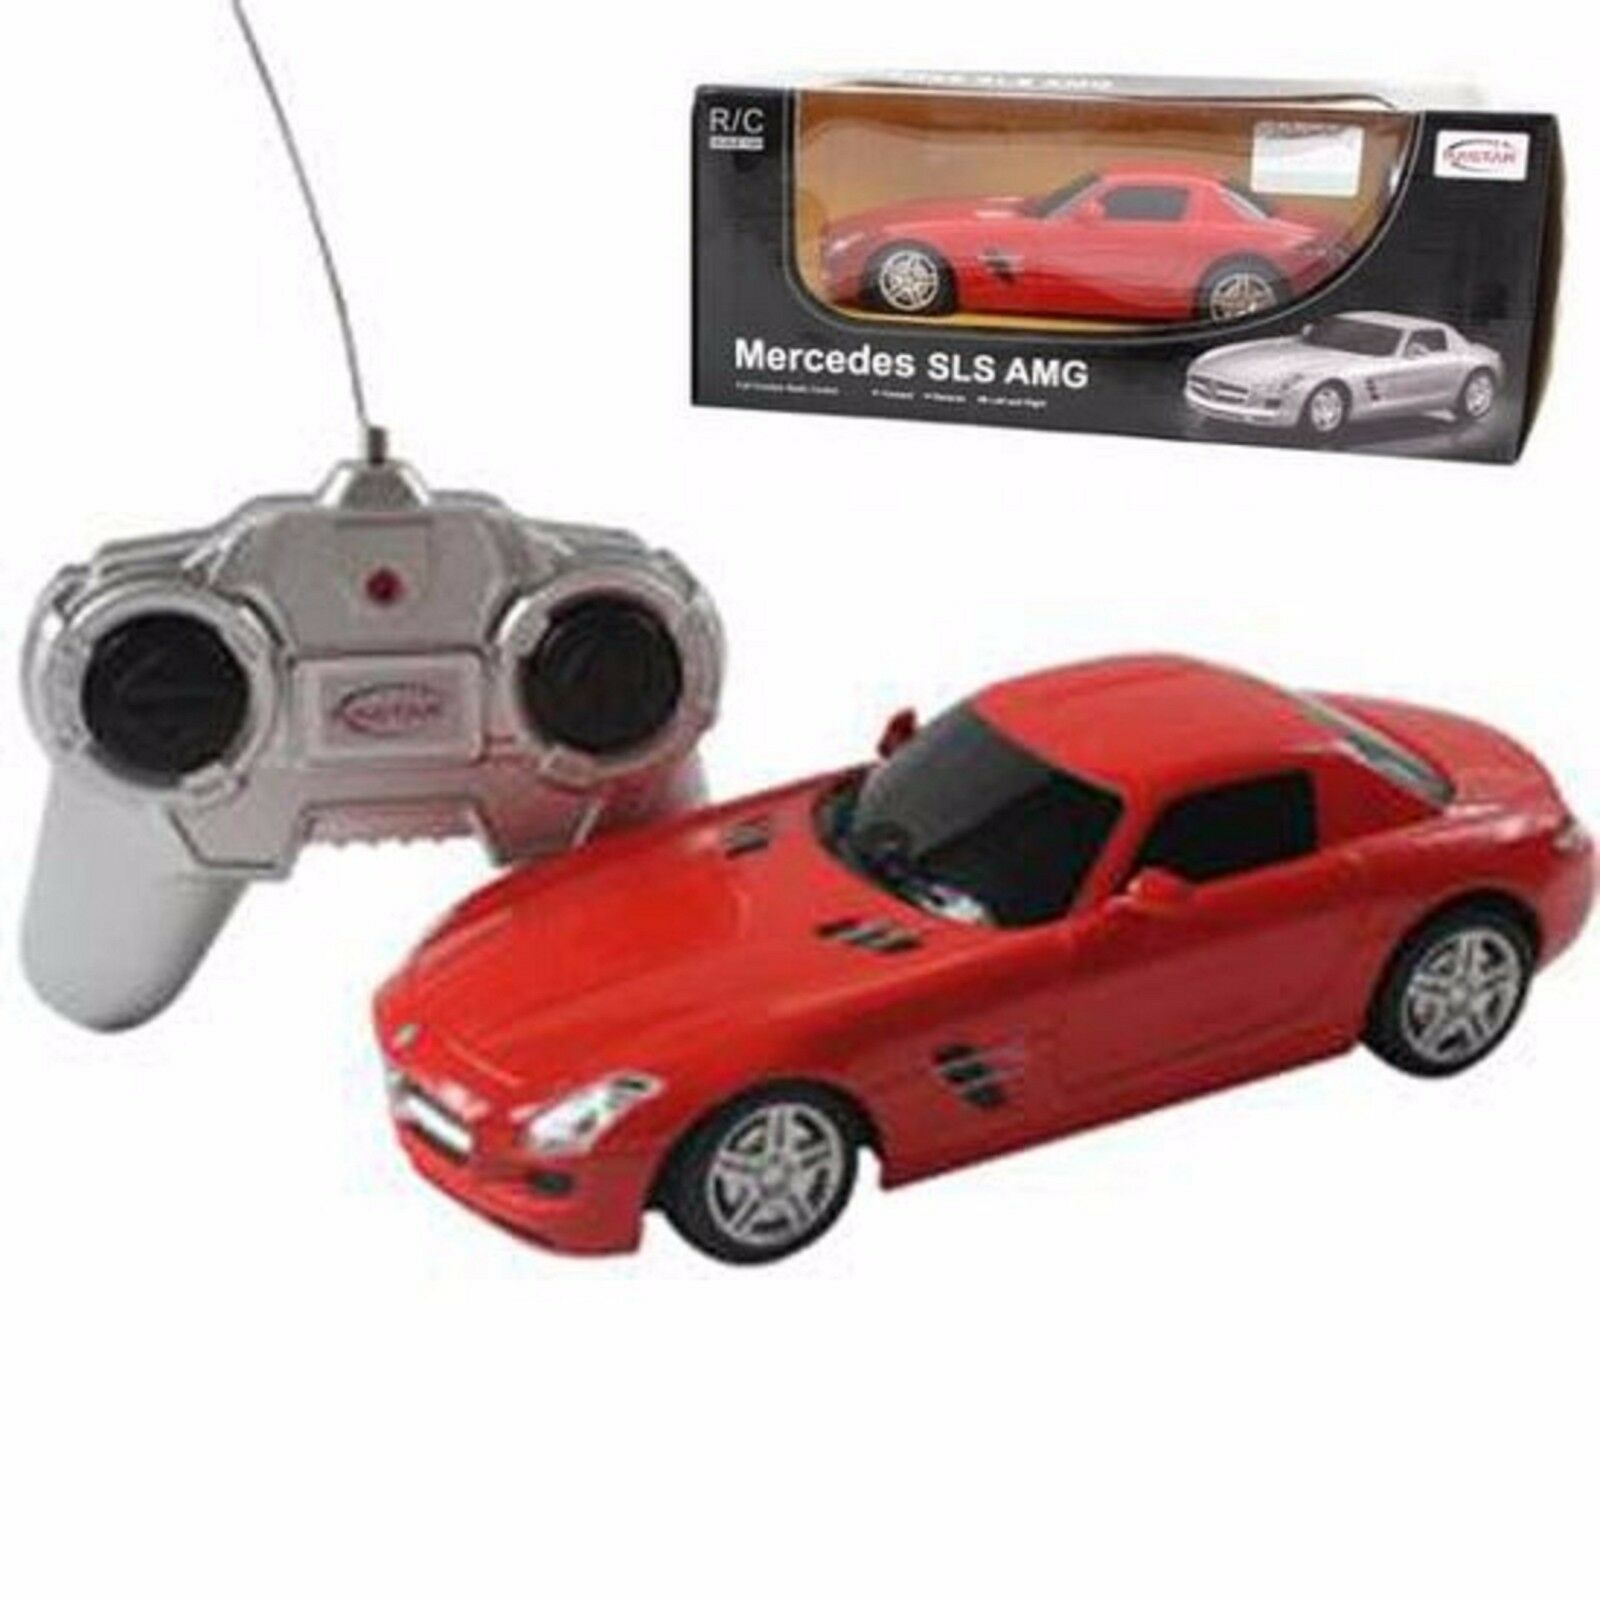 Radio Remote Control Car Rastar 1 24 Scale Mercedes SLS RC IR Ages 6+ Toy Play